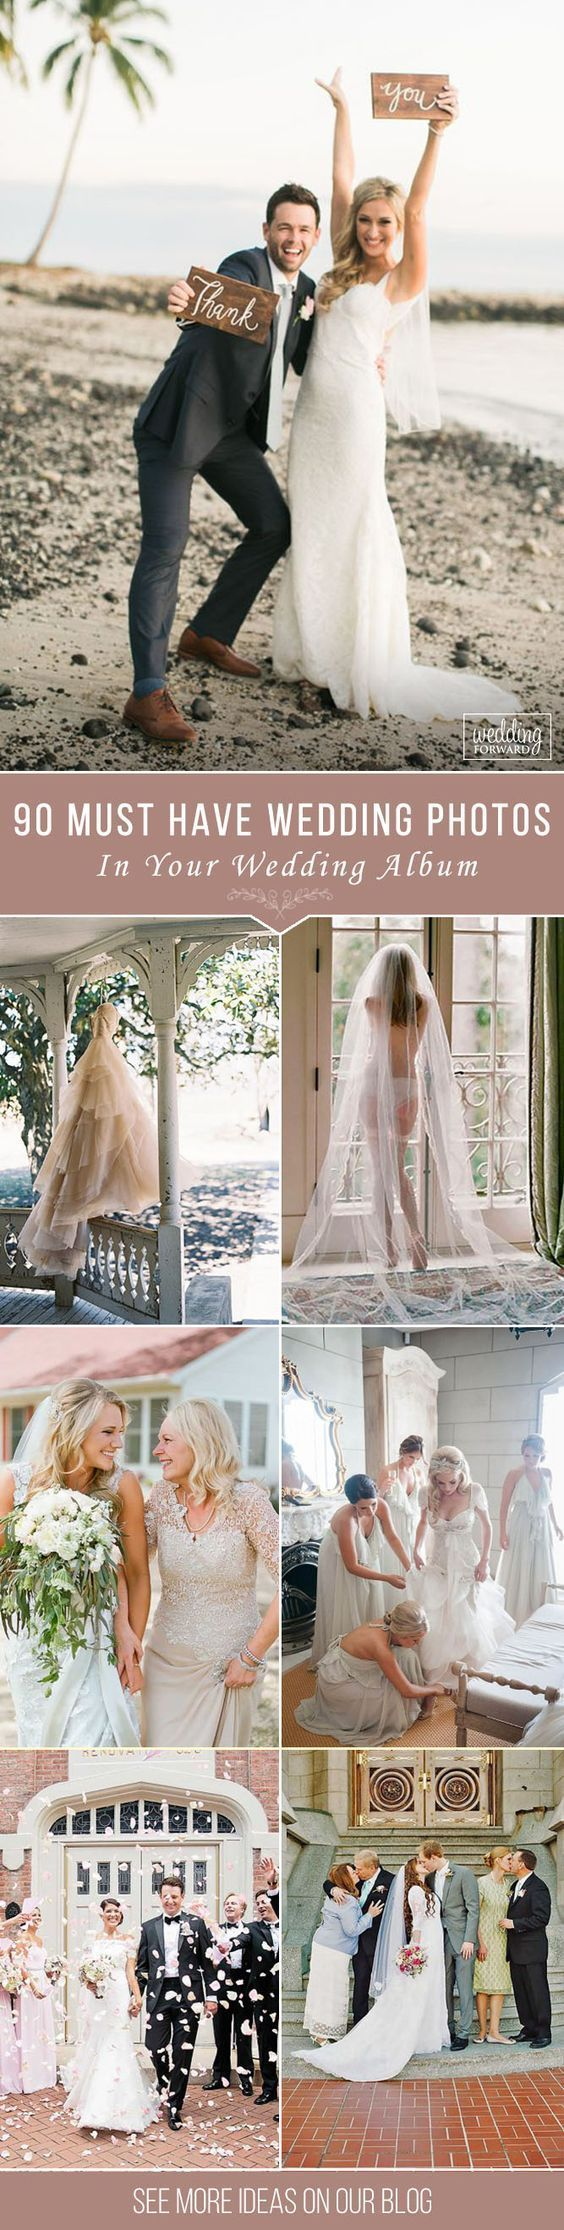 Must Have Wedding Photos In Your Album ❤ Fanny, beautiful, charming, touching moments. Take a look of wedding photos we collected for you from all over the Pinterest to help organize the best ideas. See more: http://www.weddingforward.com/wedding-photos-album/ #wedding #photography